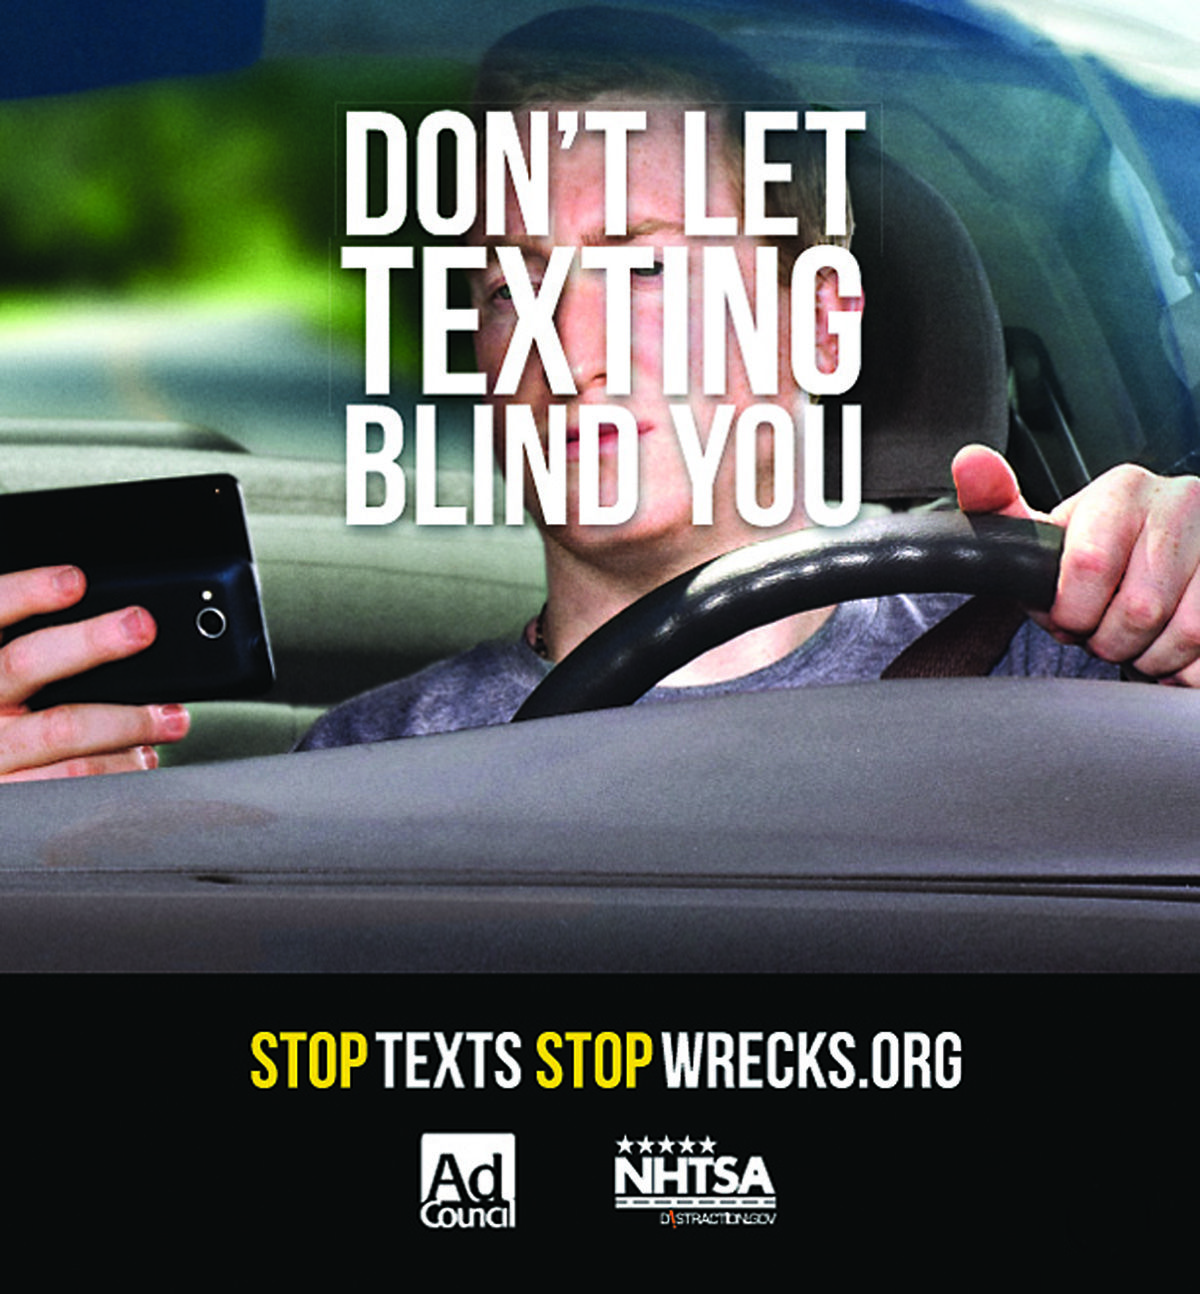 Texting And Driving Quotes Texting And Driving Ad  Google Search  Ads  Pinterest  Texting